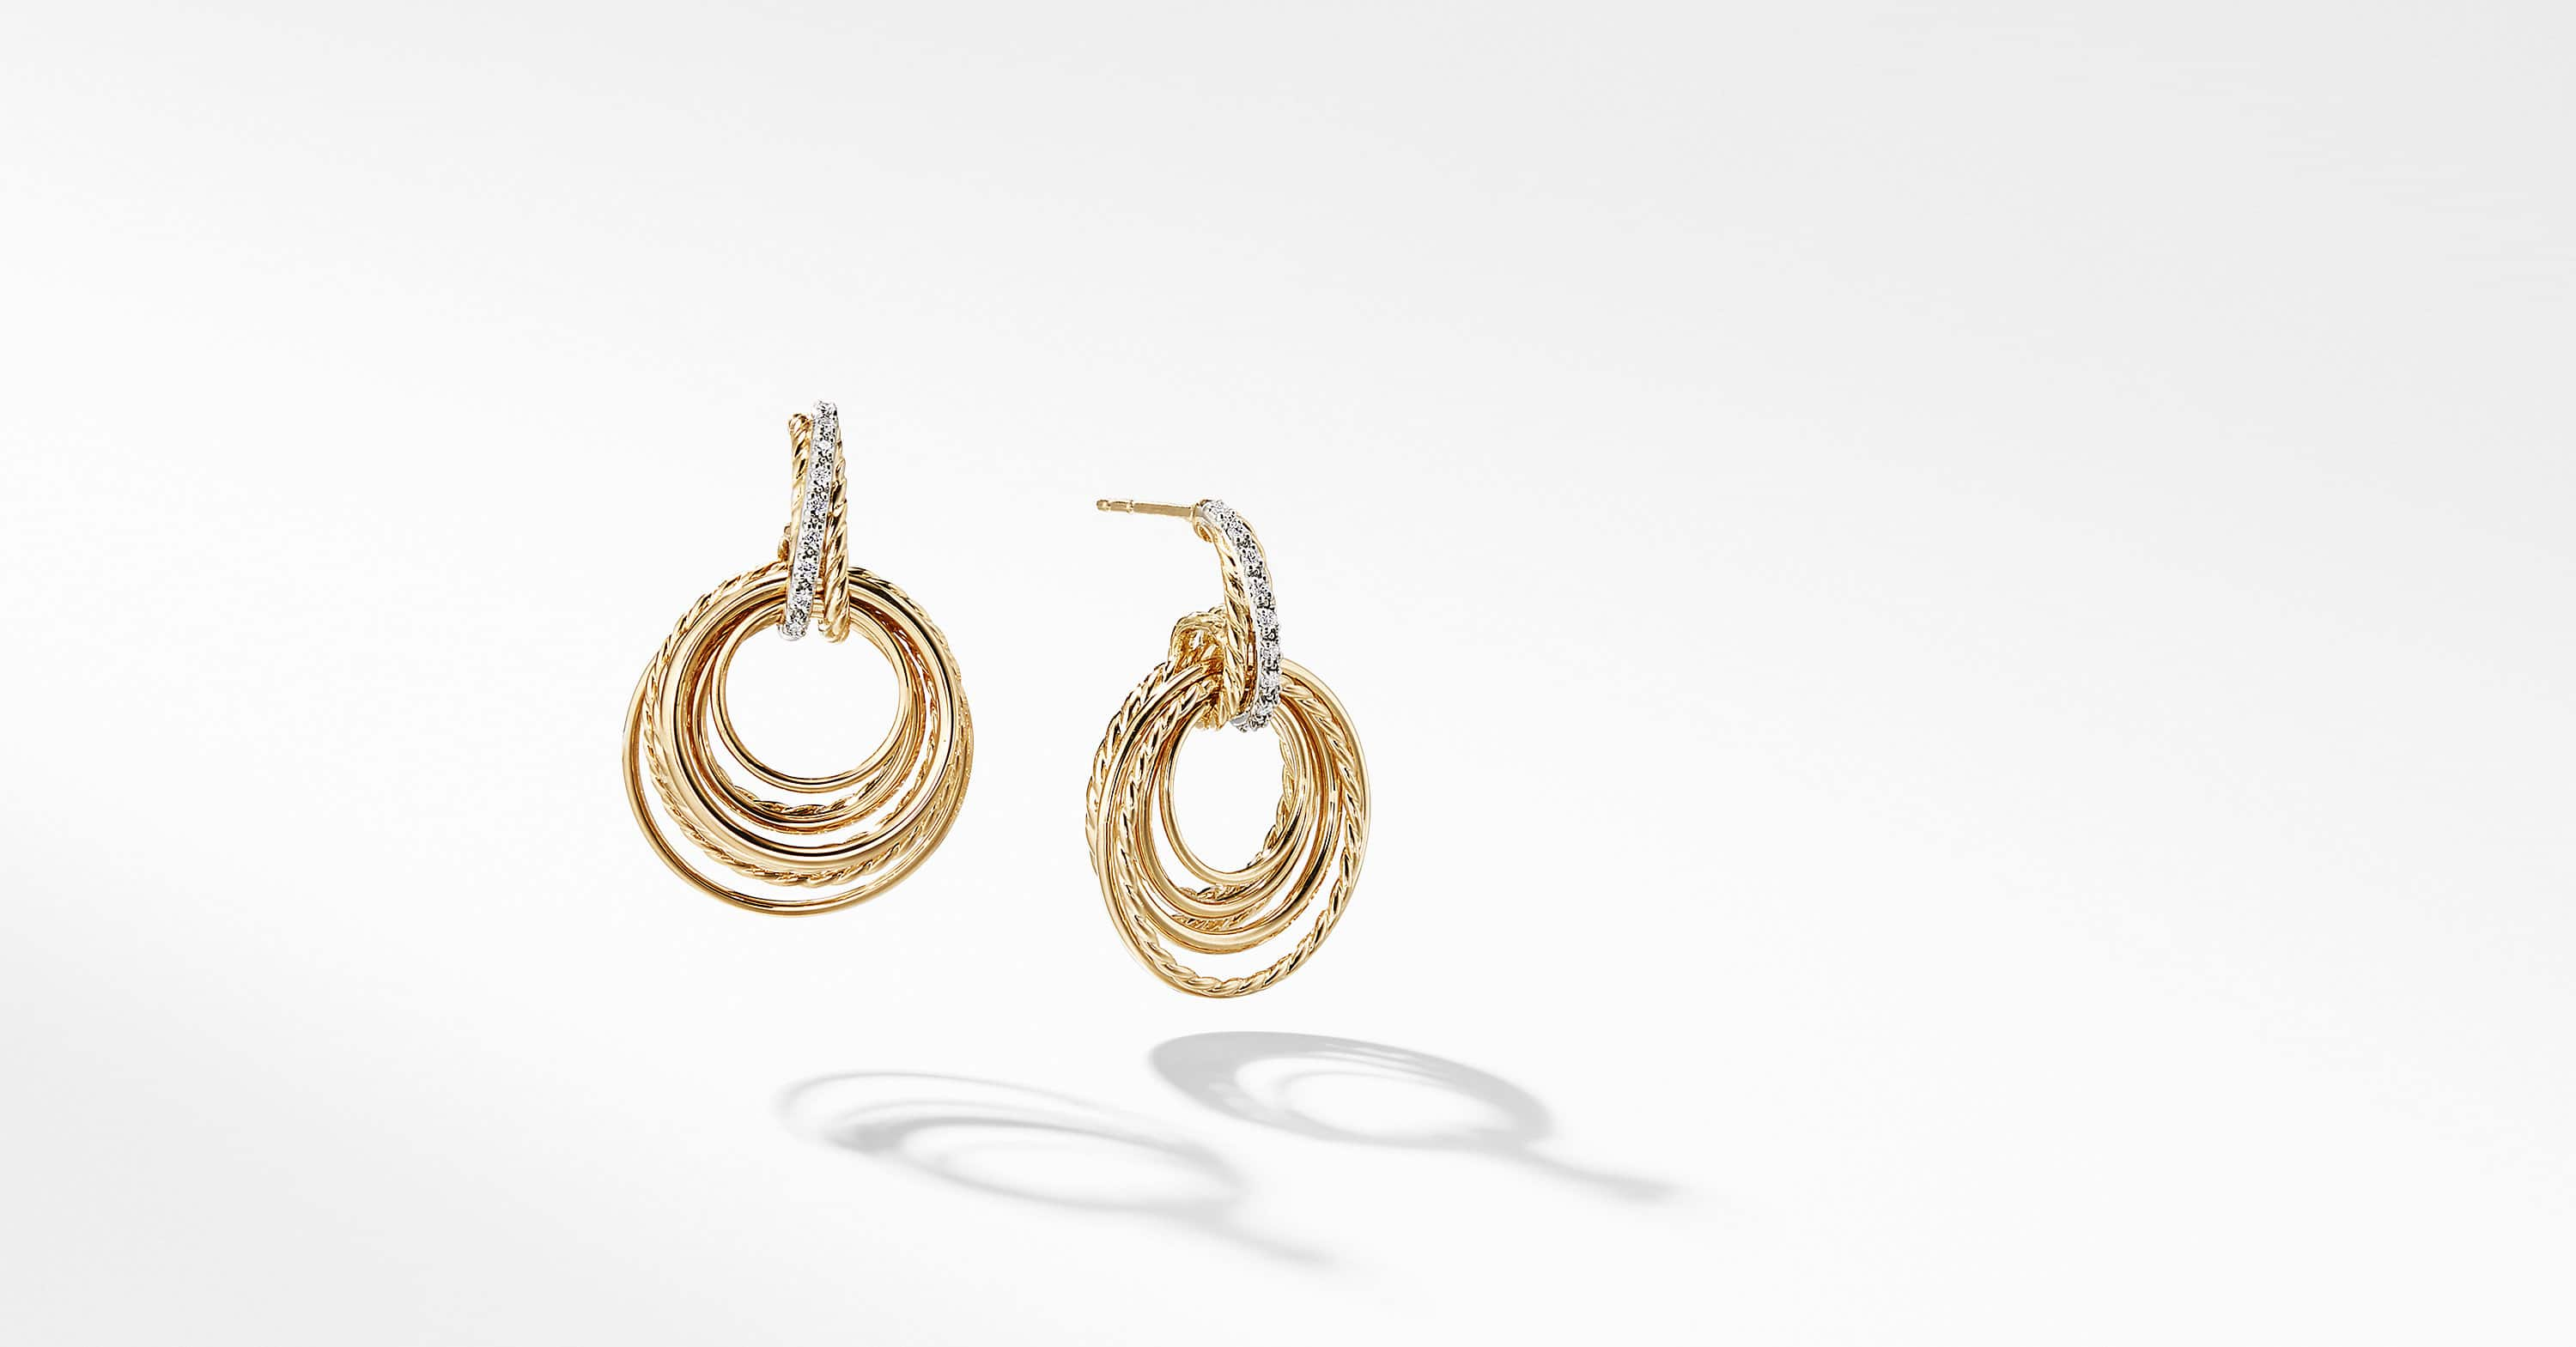 Crossover Drop Earrings with Diamonds in 18K Yellow Gold, 30mm